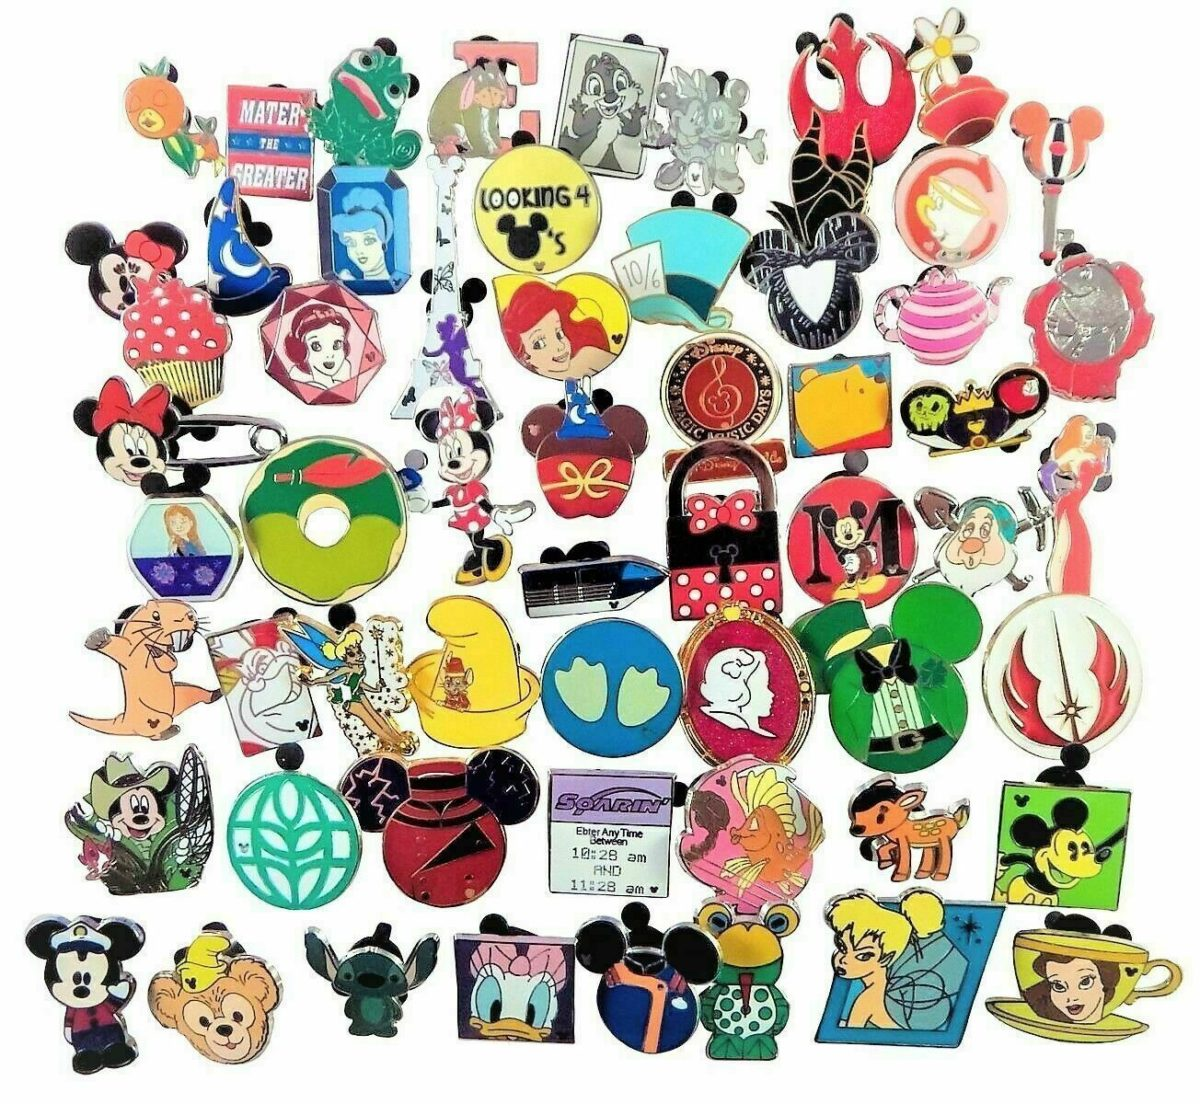 Disney Pin Trading 25 Assorted Pin Lot - Brand NEW Pins - No Doubles - Tradable